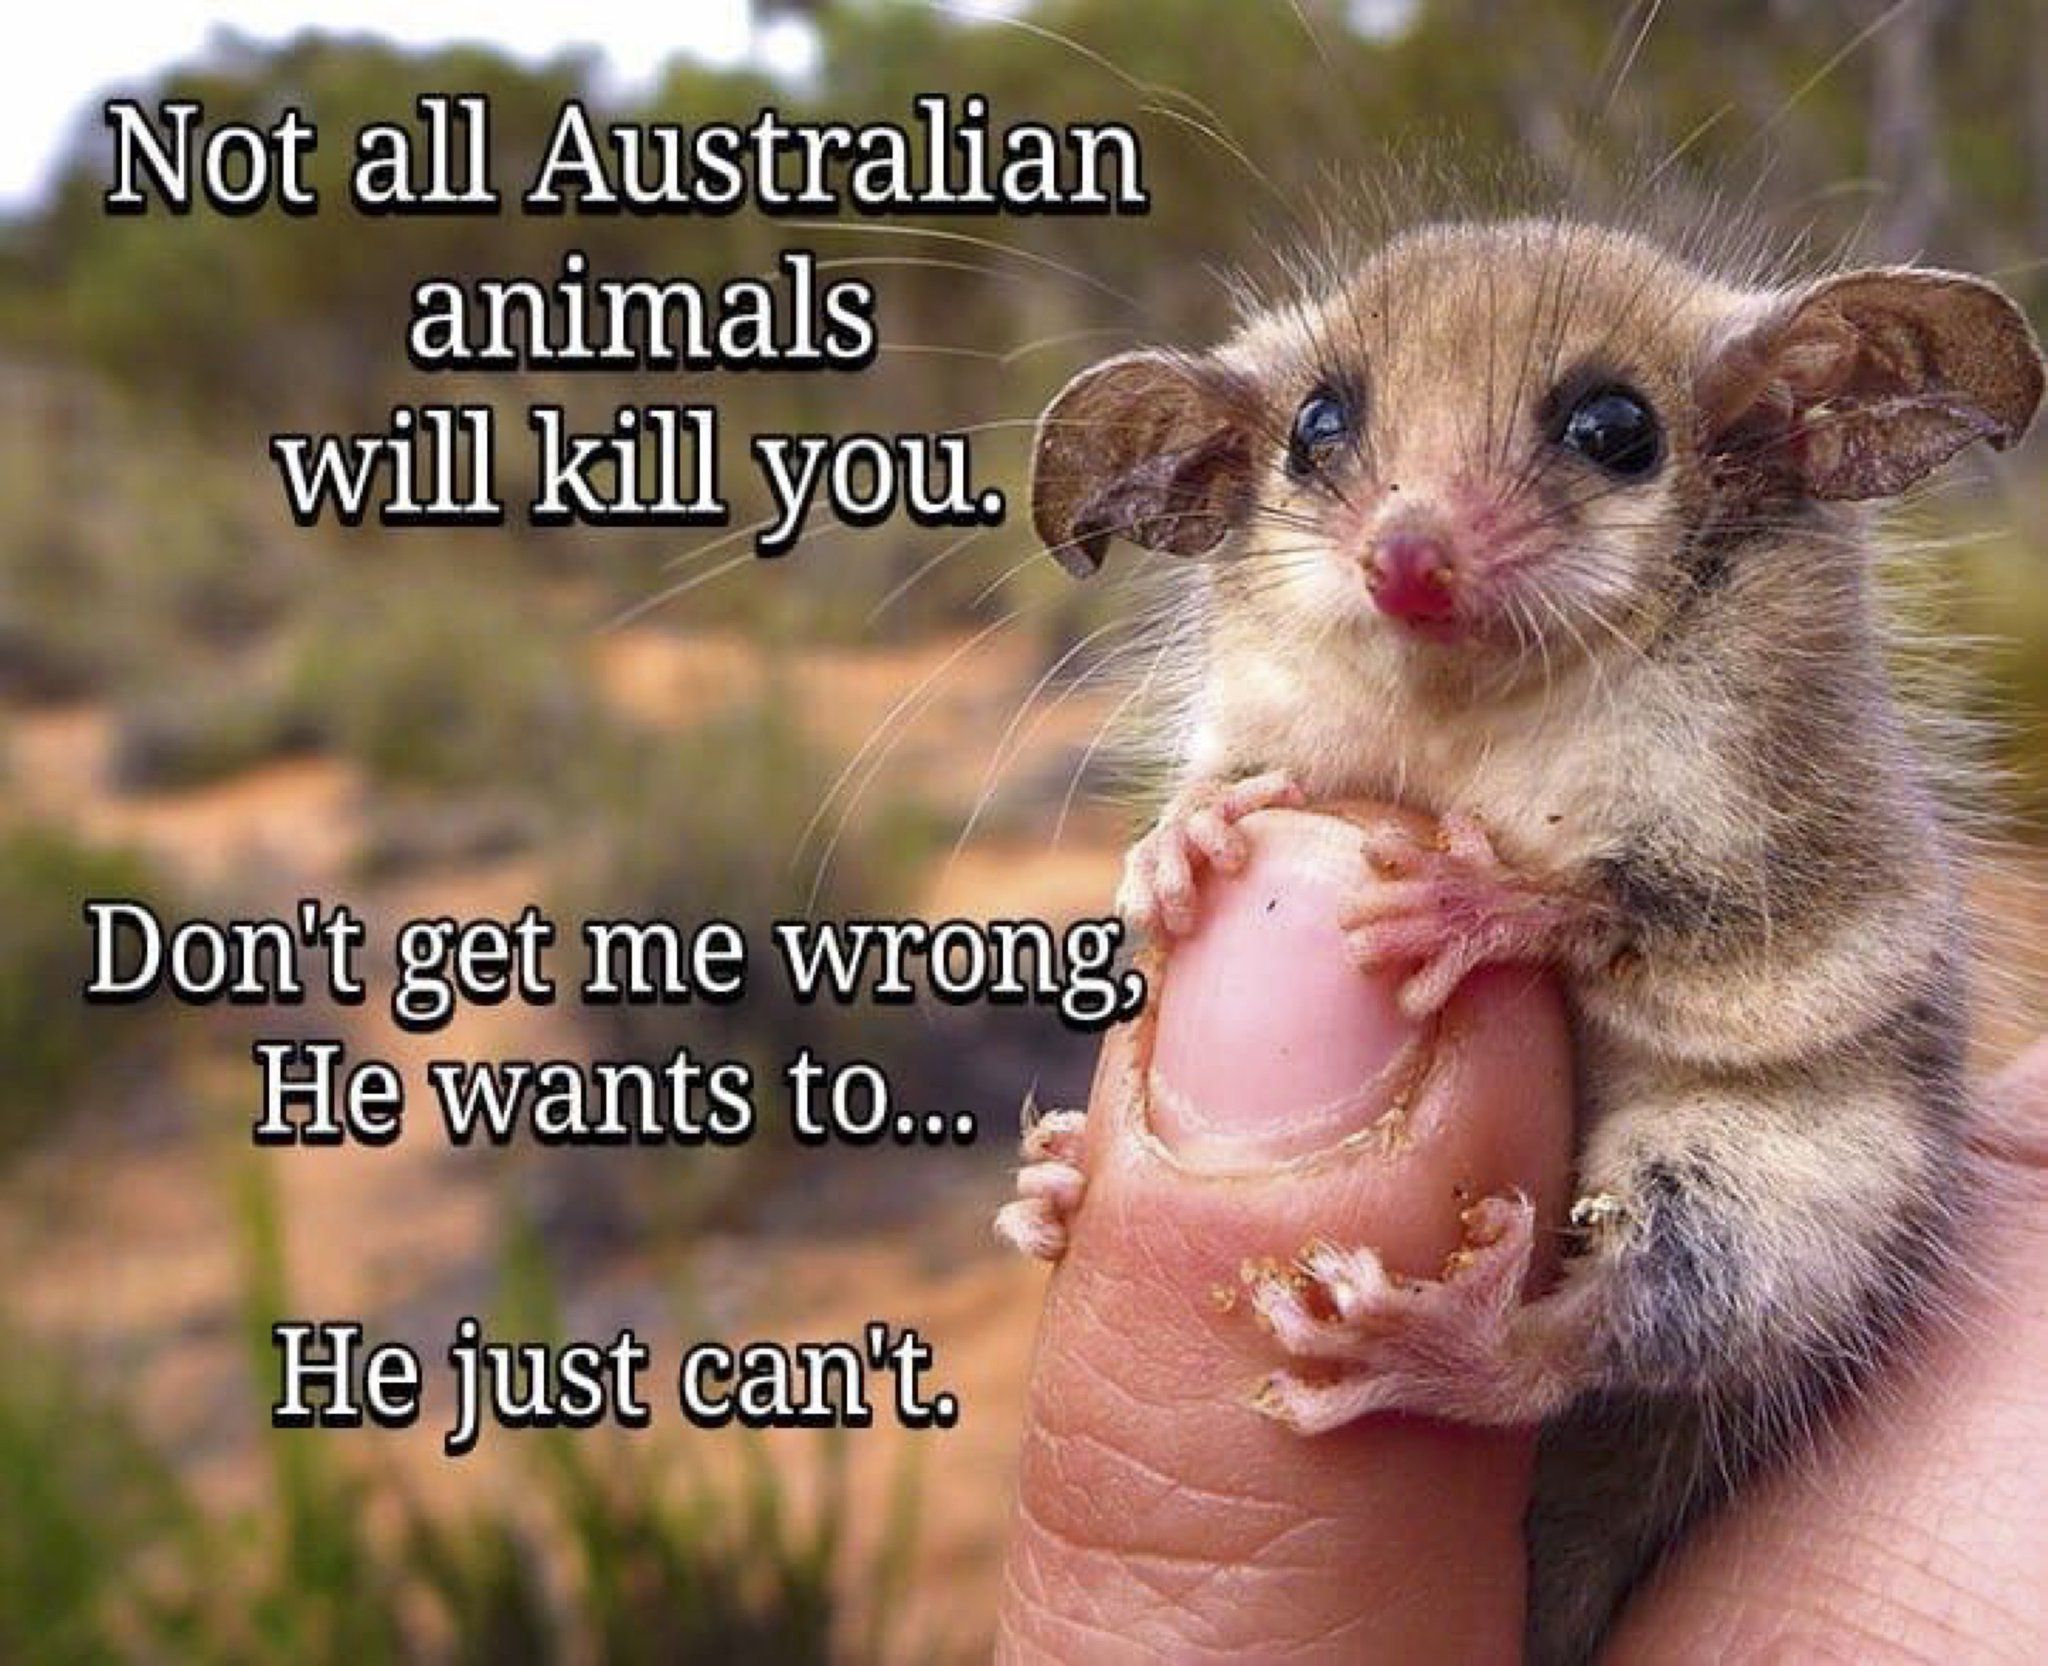 ConservationBytes on Funny pictures, Australia funny, Humor